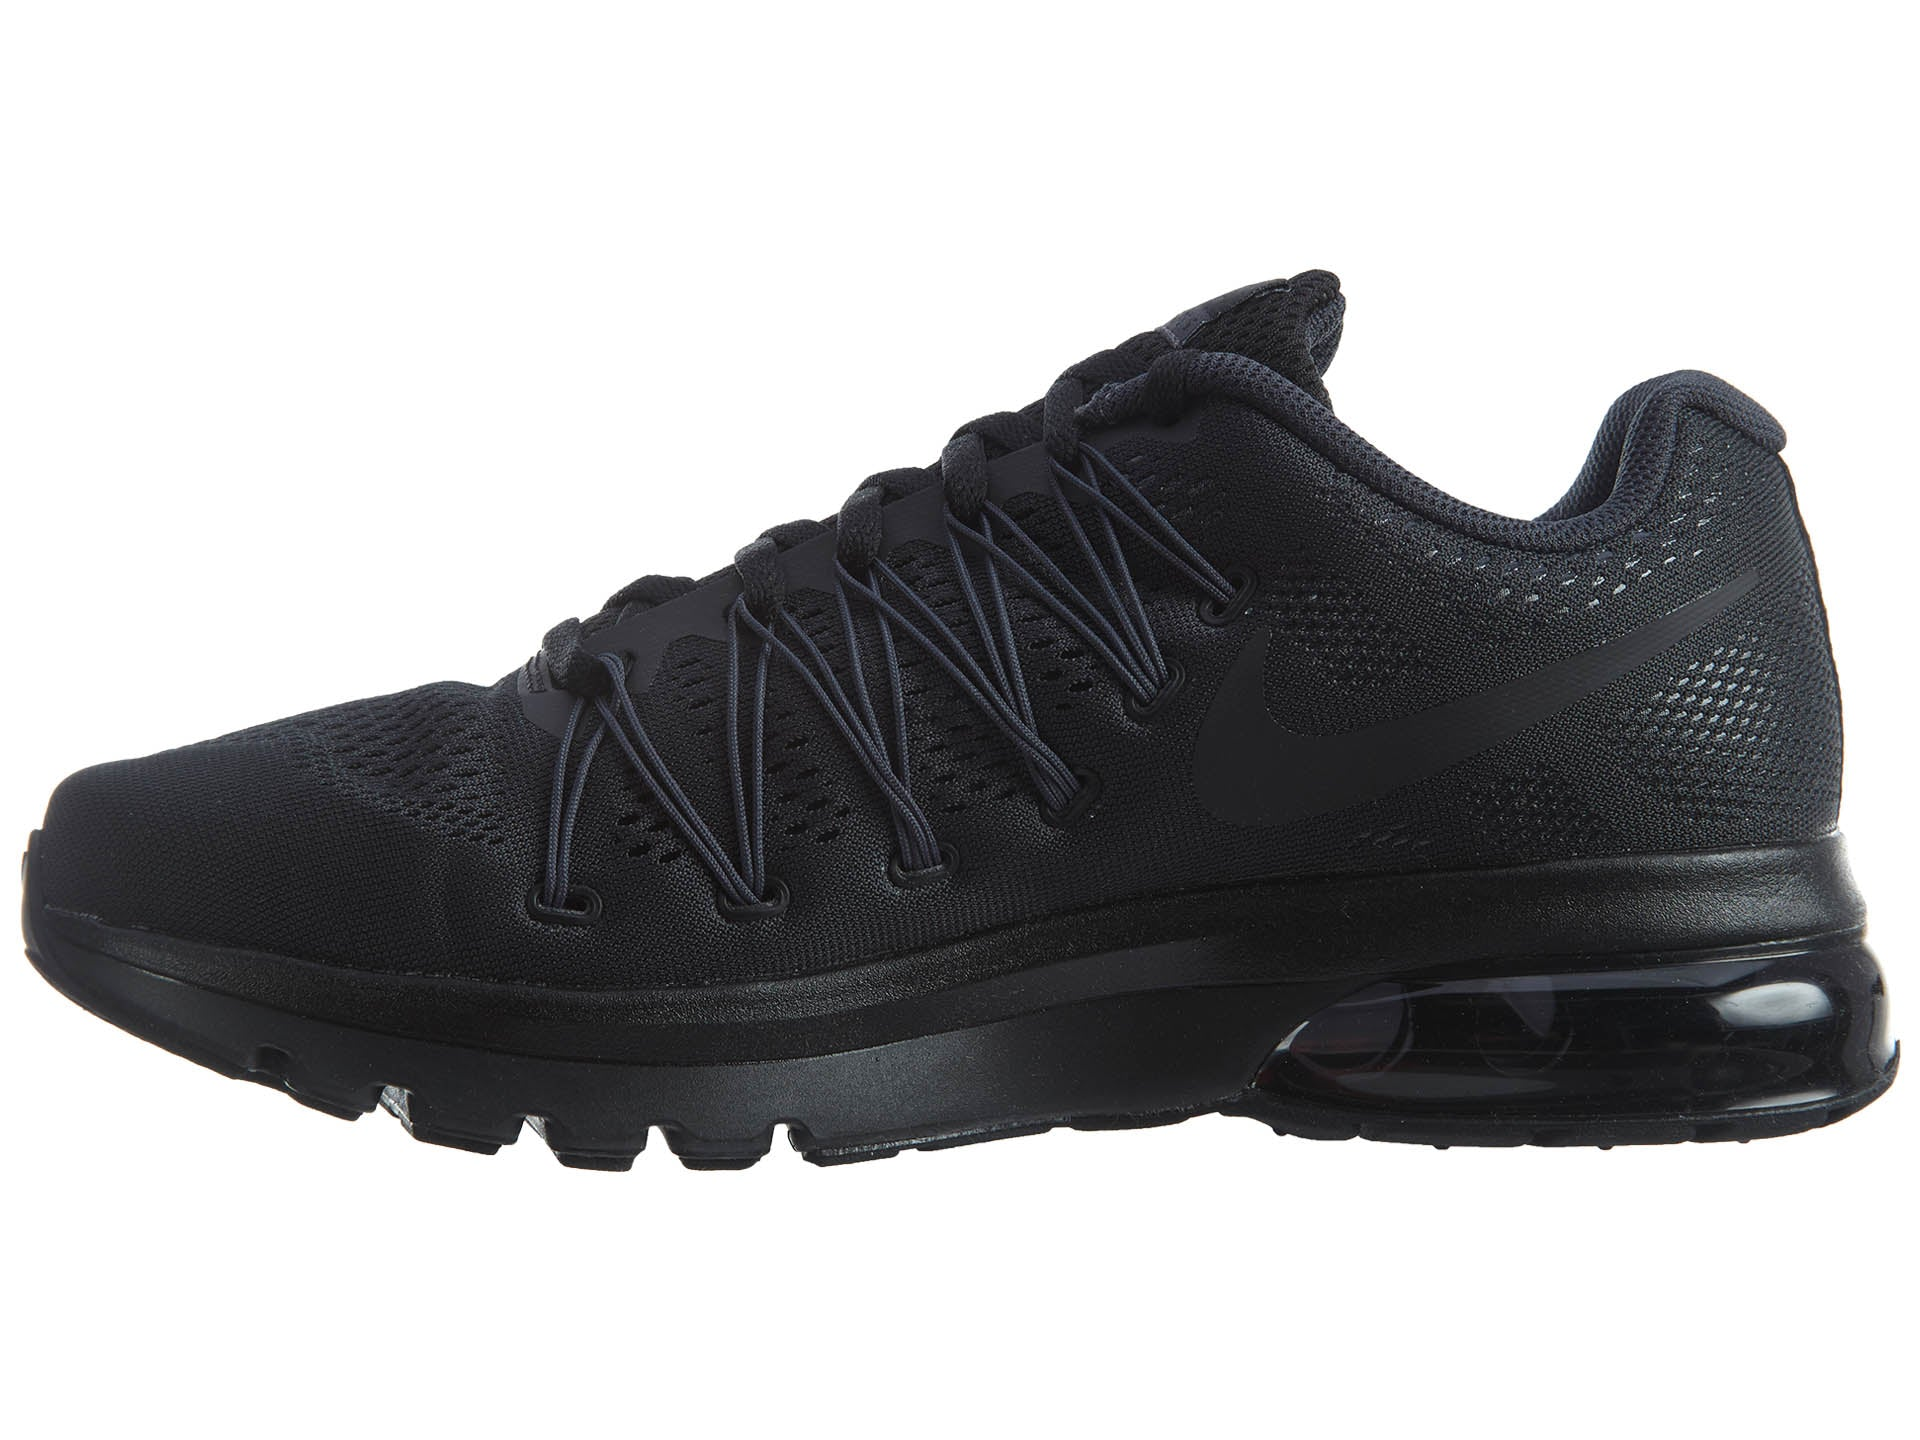 a9db9d665f6f8 Nike Air Max Excellerate 5 Mens Style   852692